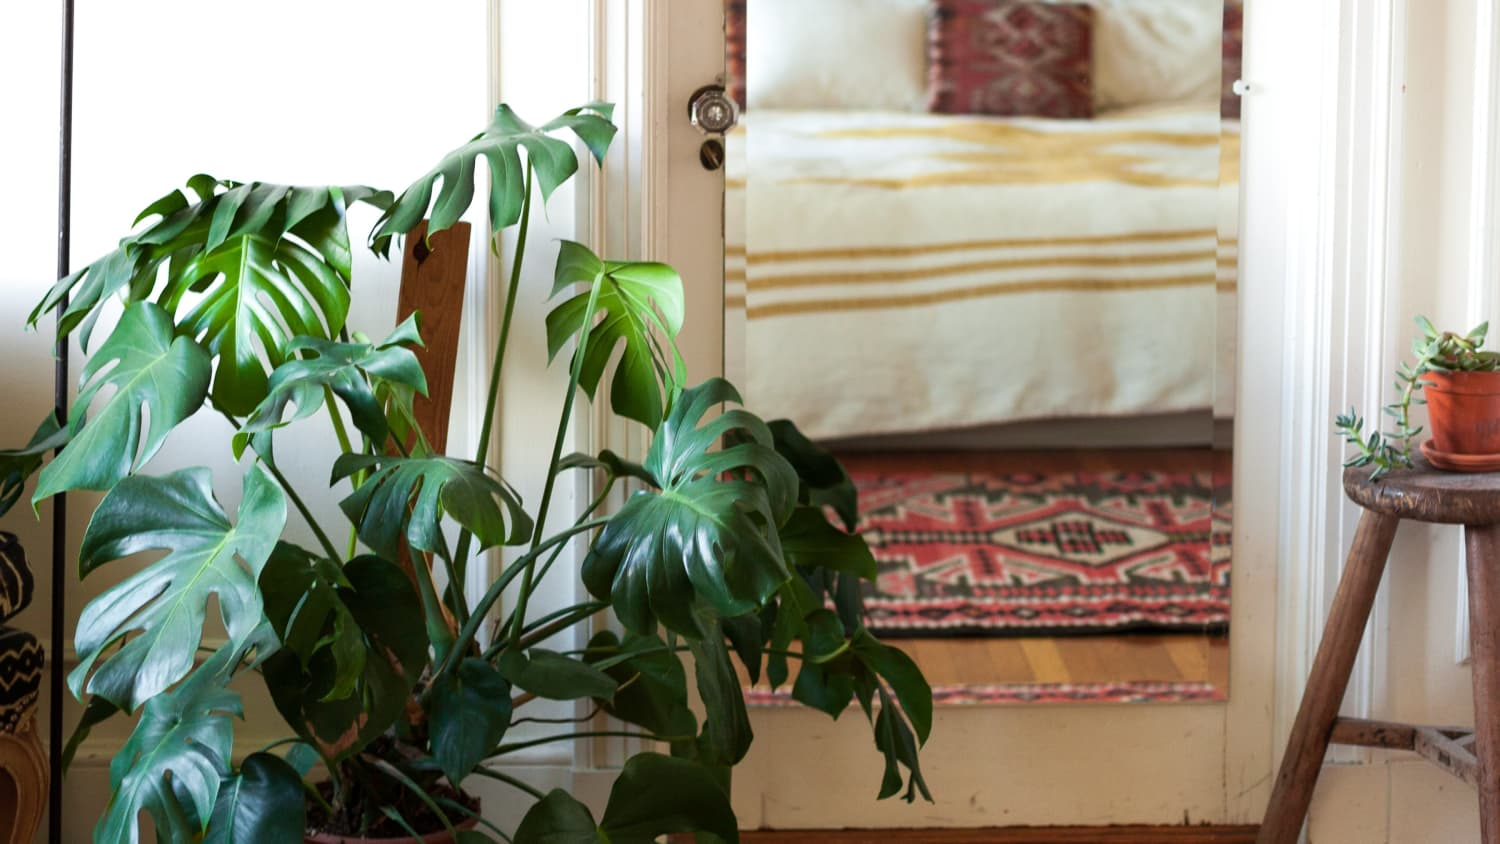 Monstera Deliciosa Plant - Growing Care and Propagation | Apartment